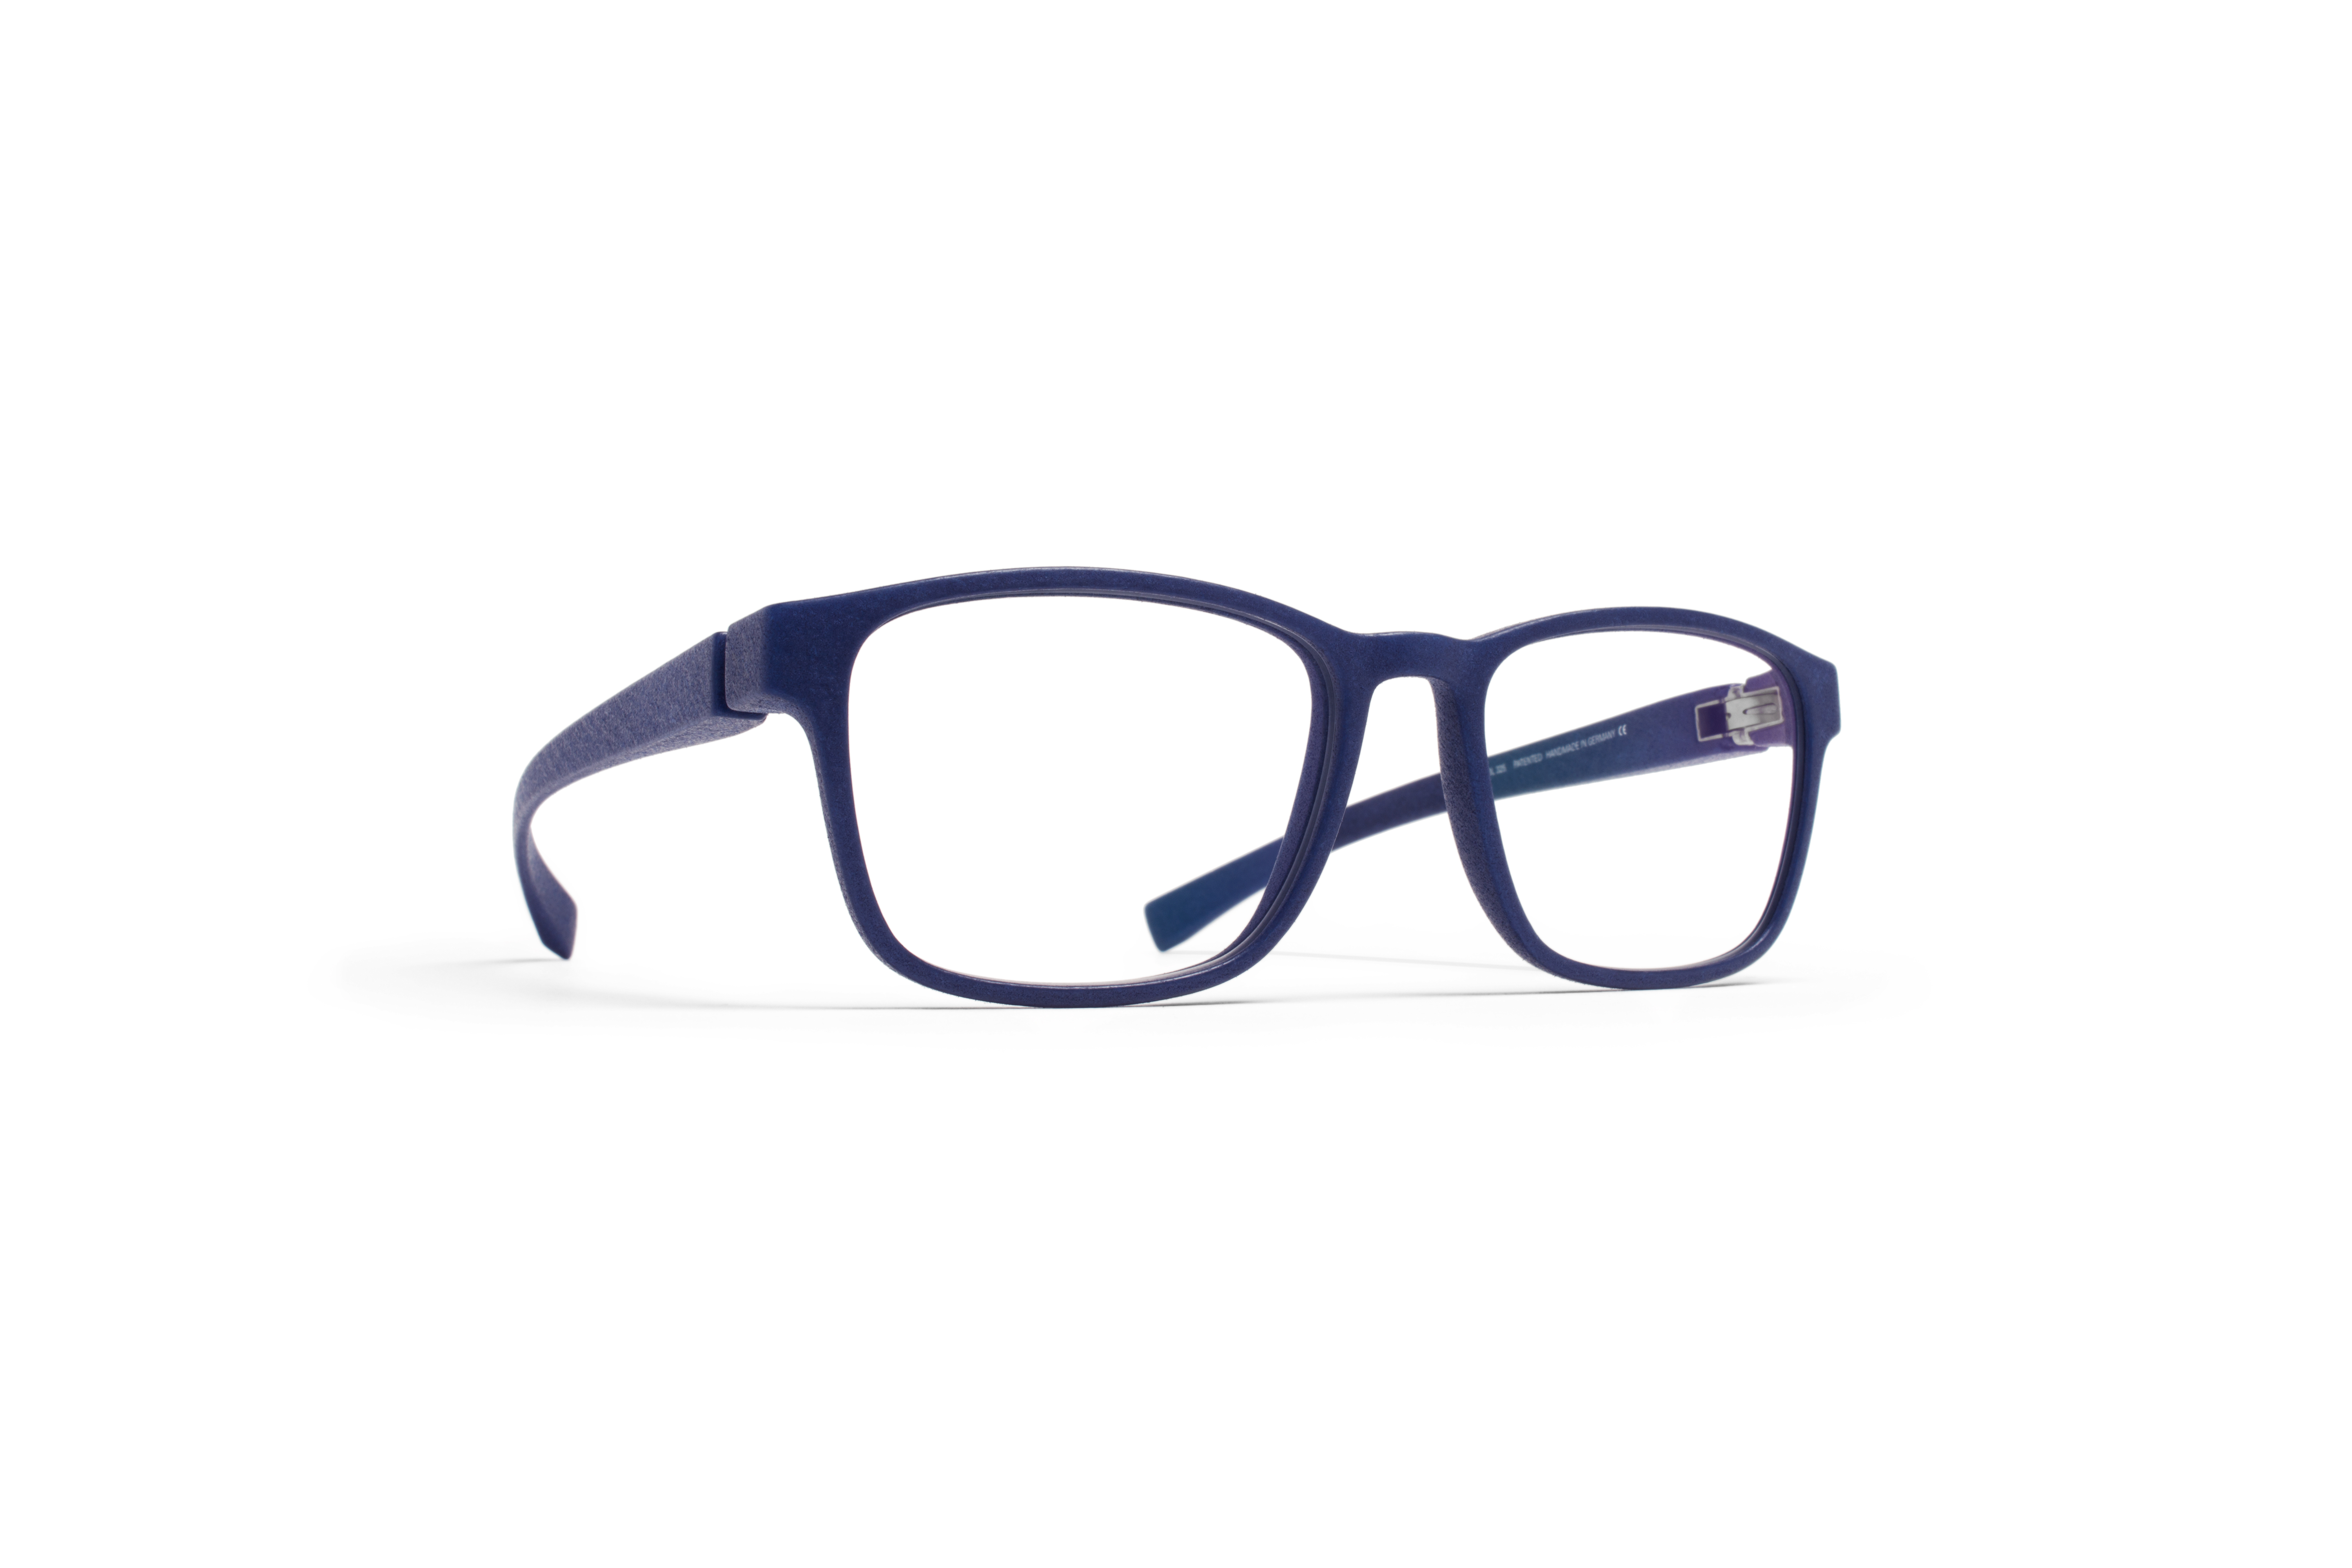 MYKITA Mylon Rx Triton Md25 Navy Blue Clear